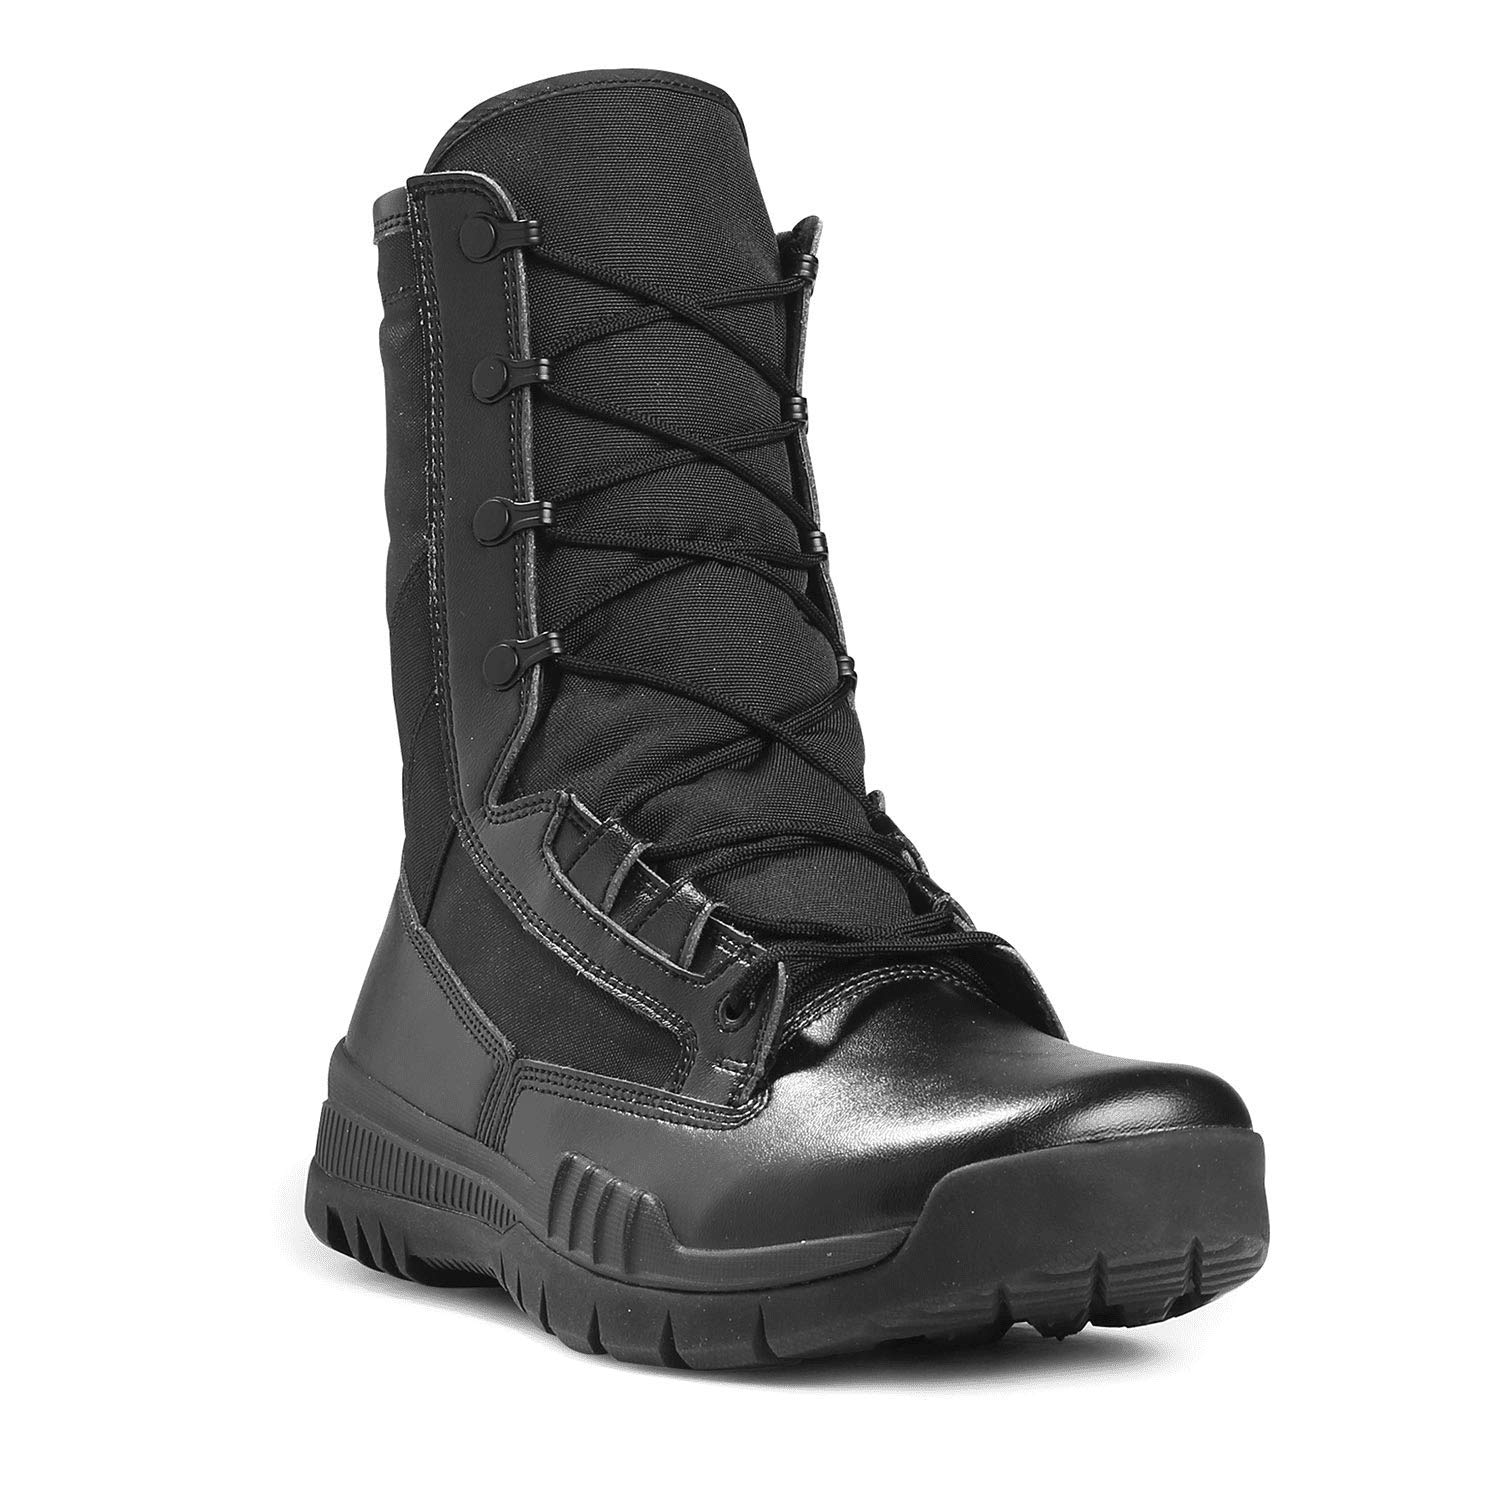 Black Nike Men's SFB Boot